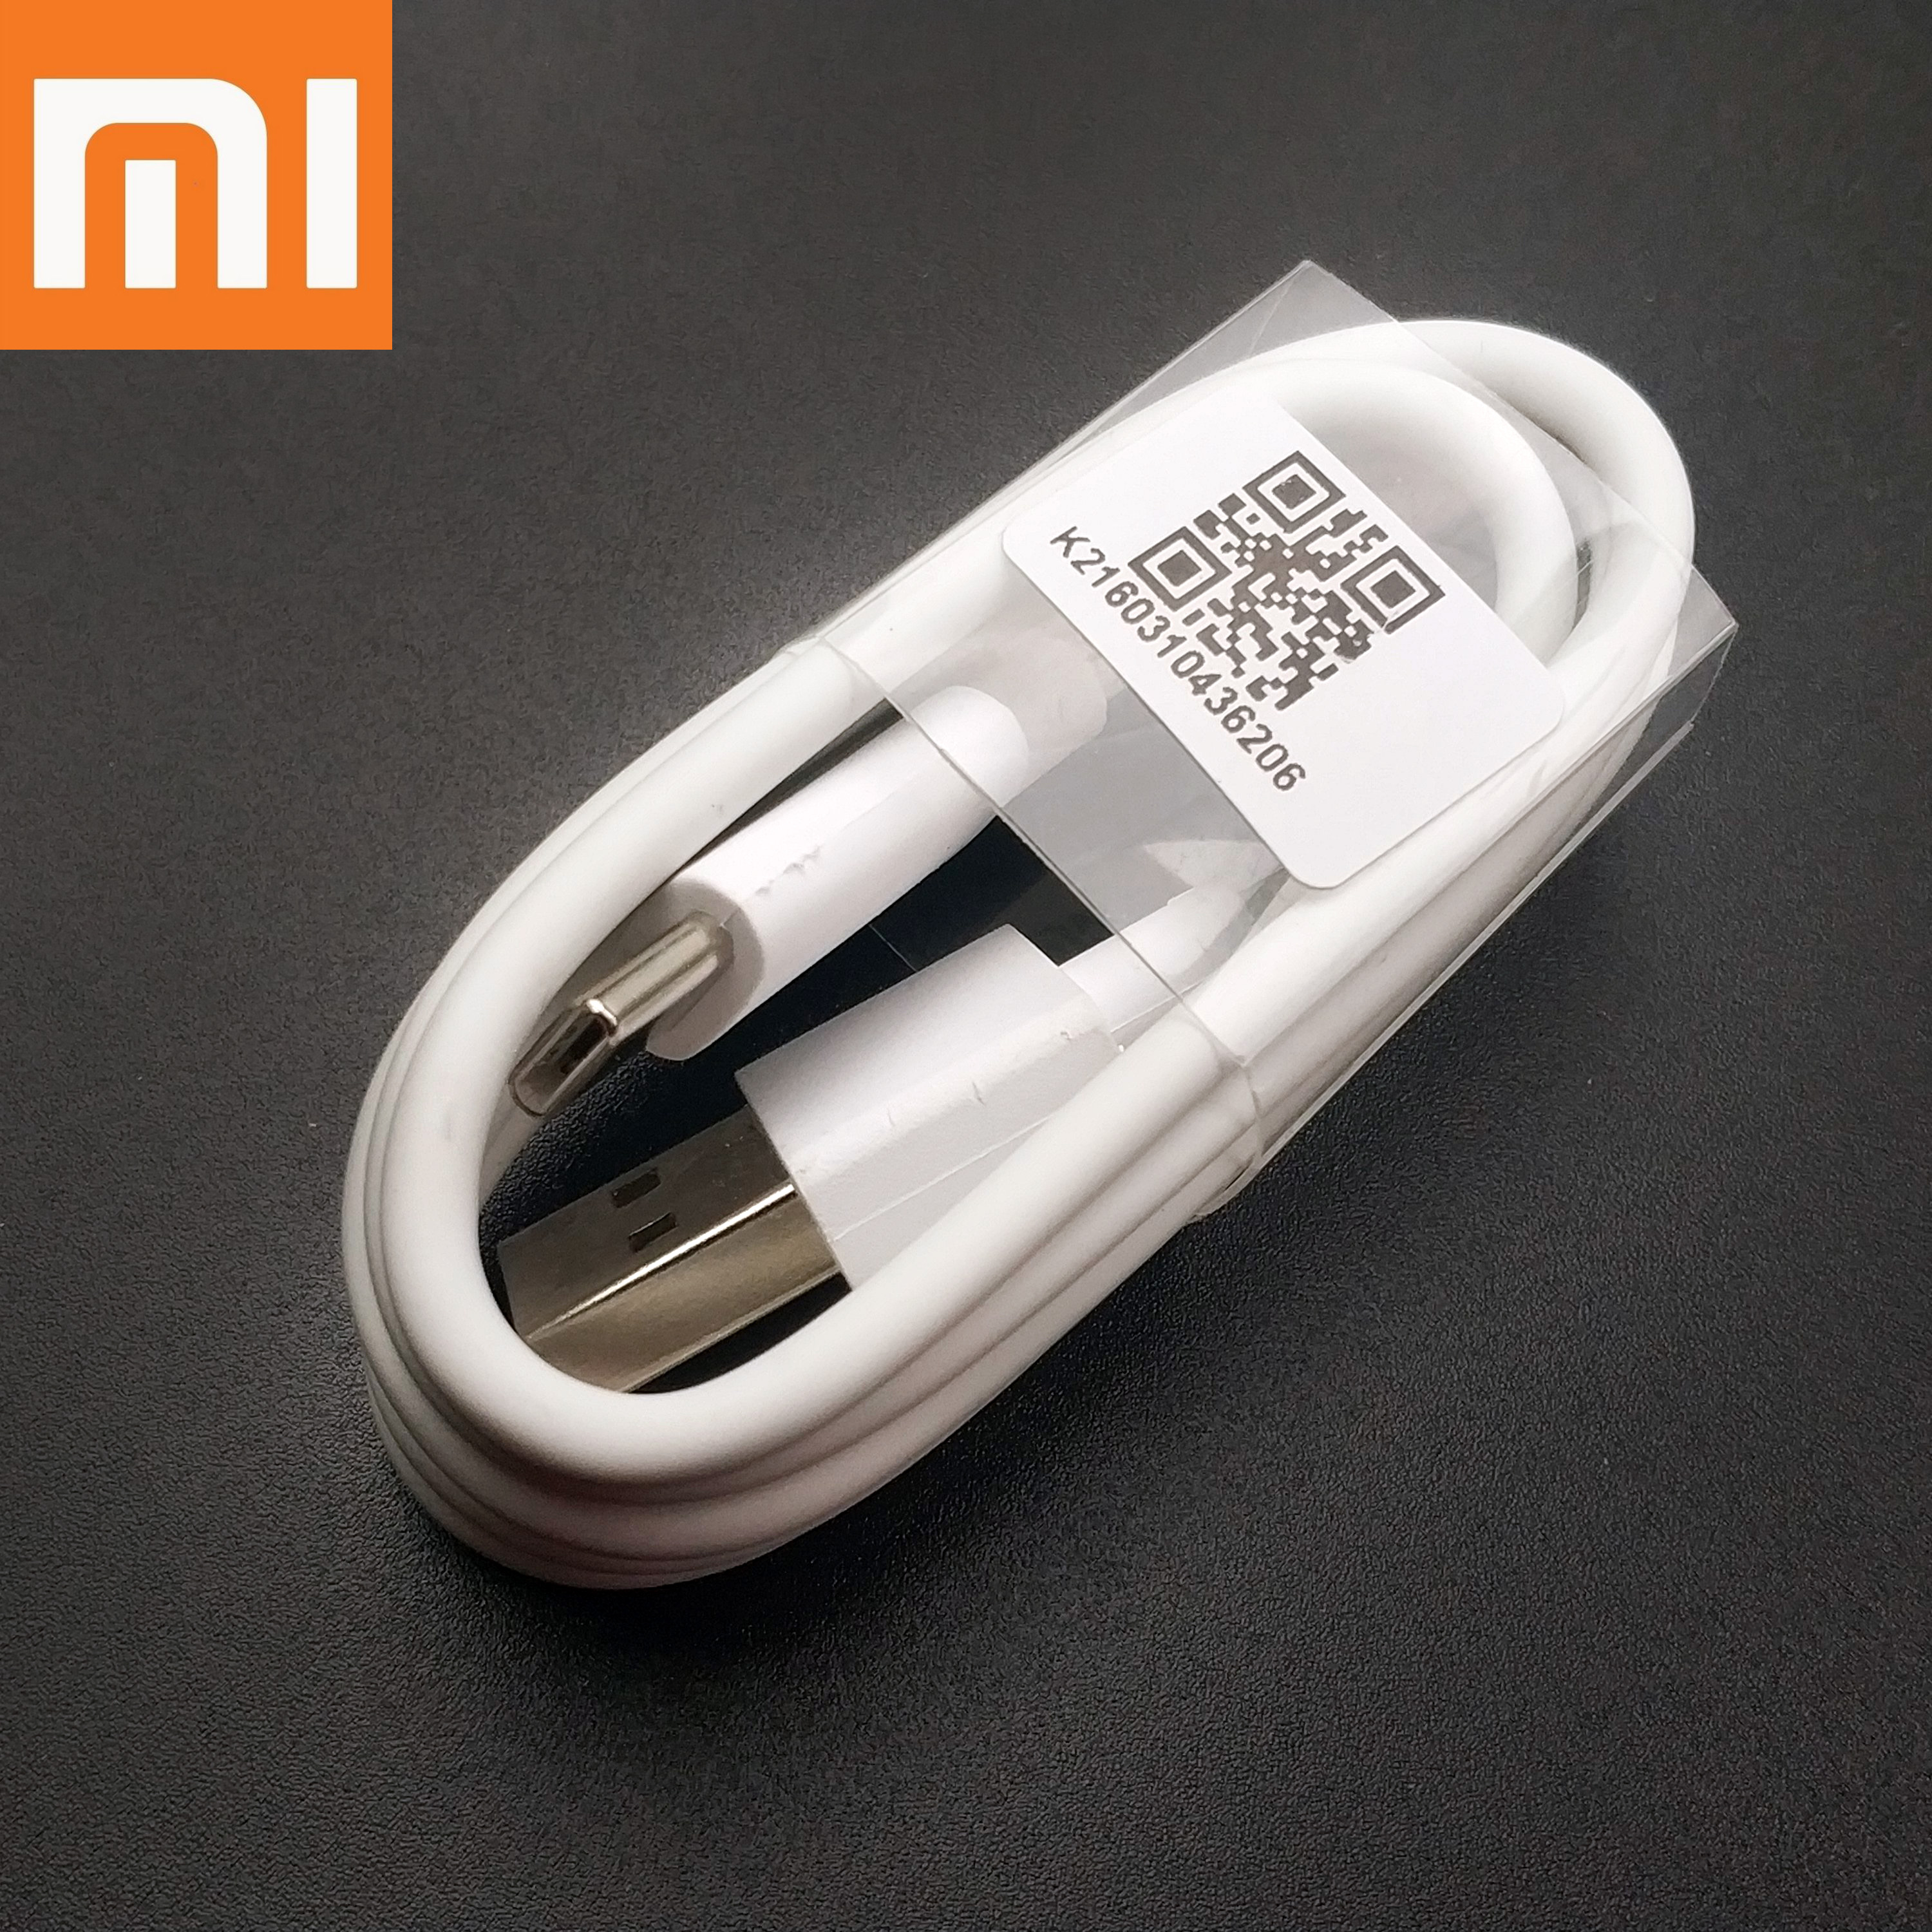 xiaomi mi 6 charger cable original usb type-c 100cm white charge data sync line cable for Mi 9 8 se mix 3 2s A2 A1 pocophone f1